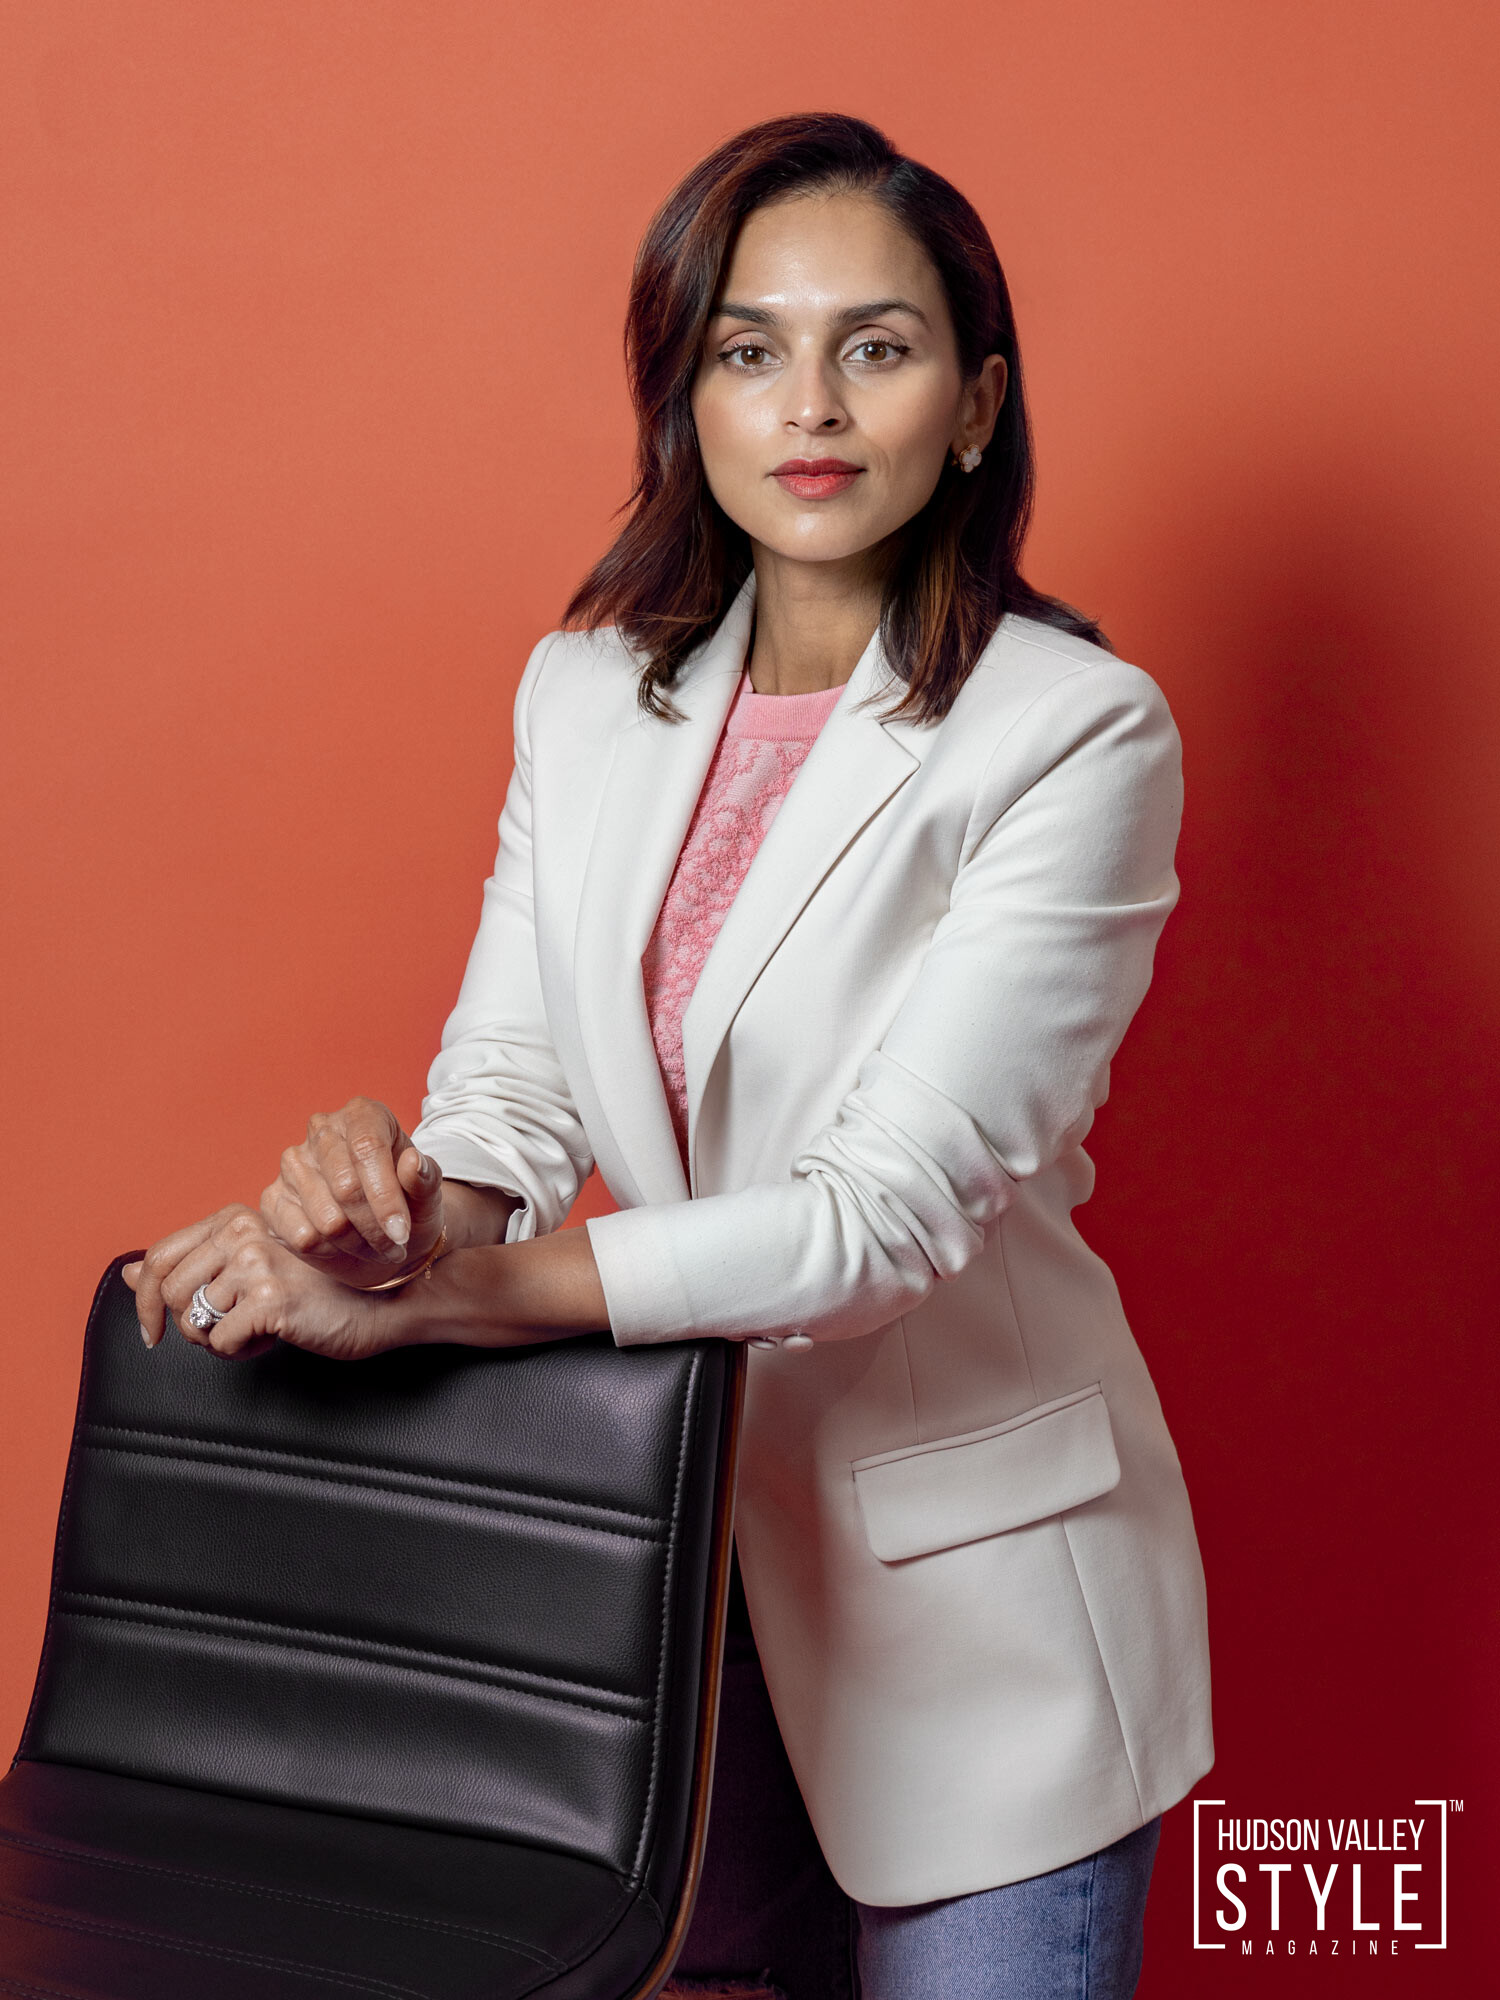 """Dr. Zainab Mogul-Ashraf (or as her patients like to call her, """"Dr. Z"""") – Hebe Medical Spa – Best Spa in Hudson Valley"""